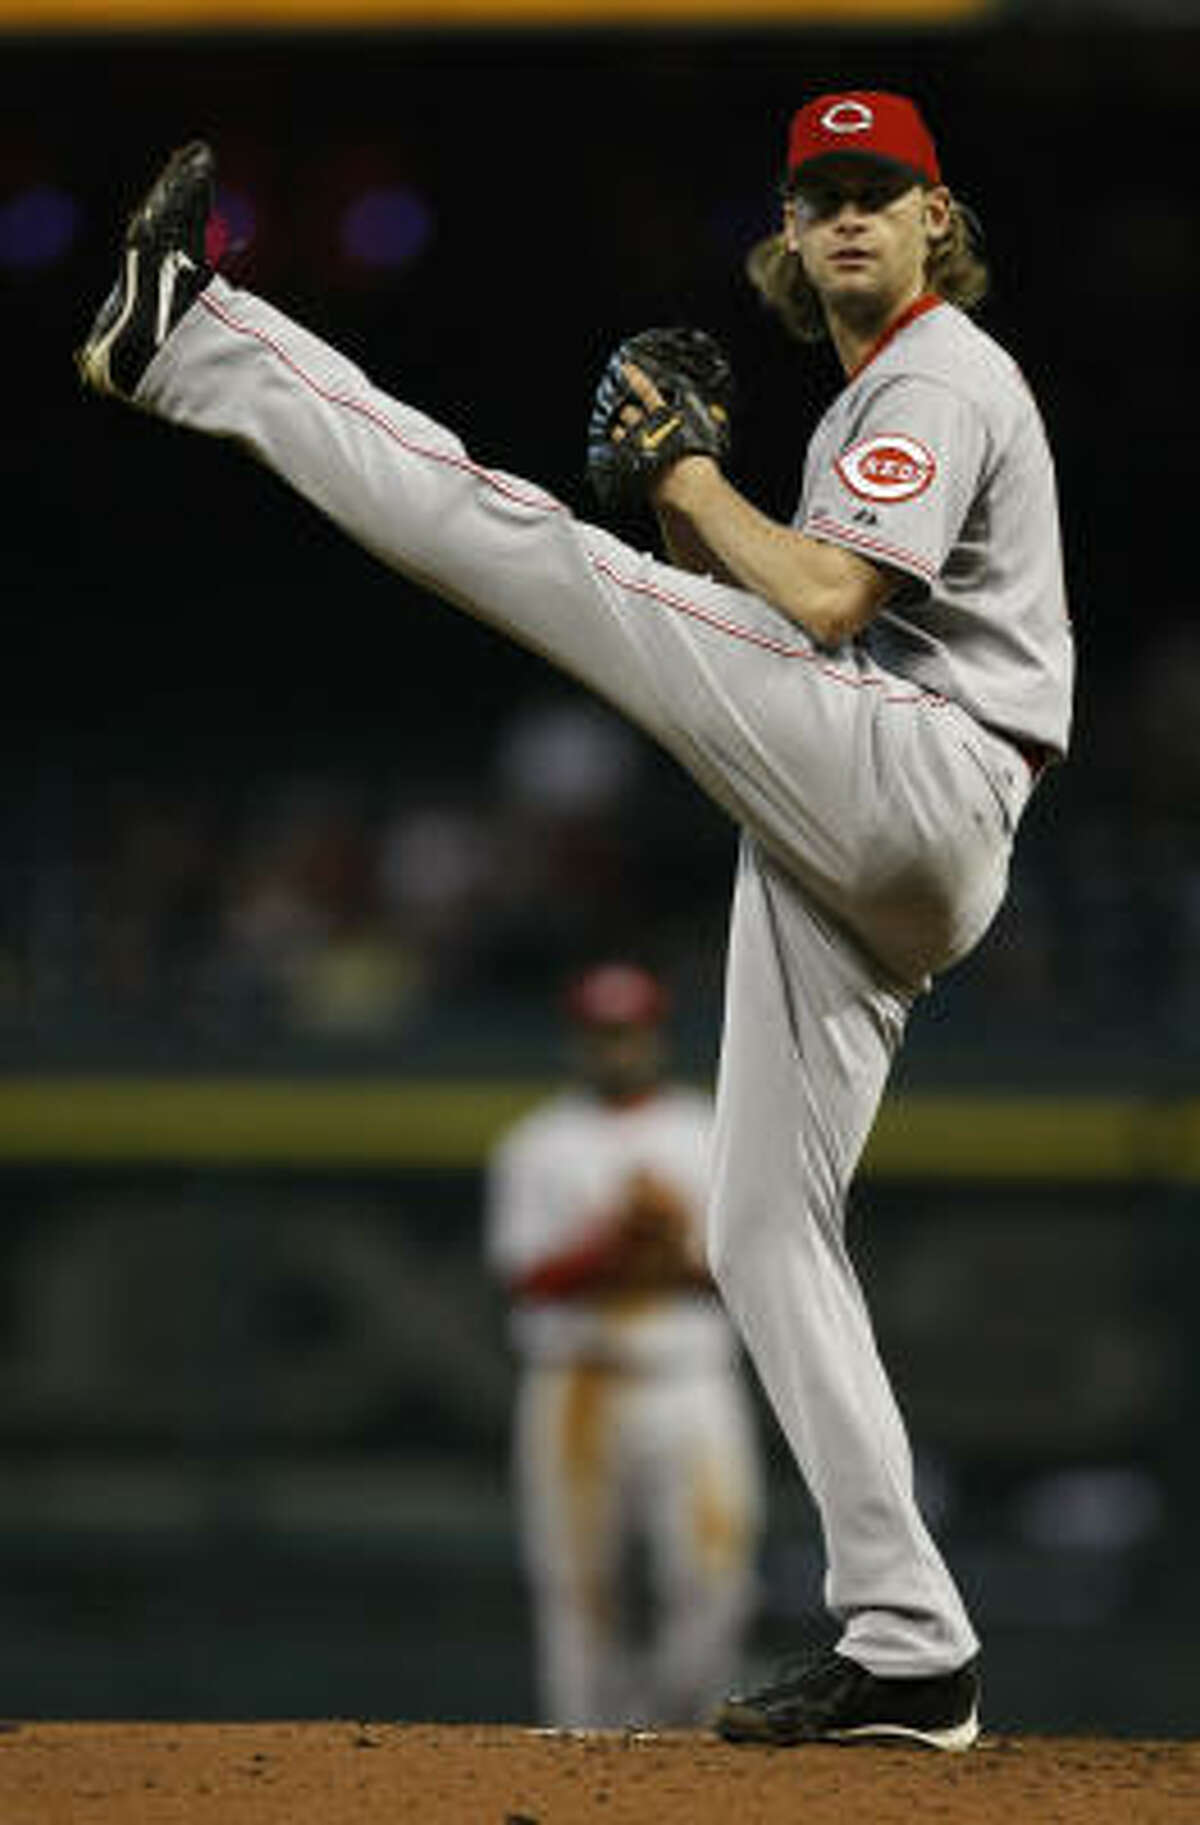 Reds starting pitcher Bronson Arroyo finished with seven strikeouts in 6.2 innings.